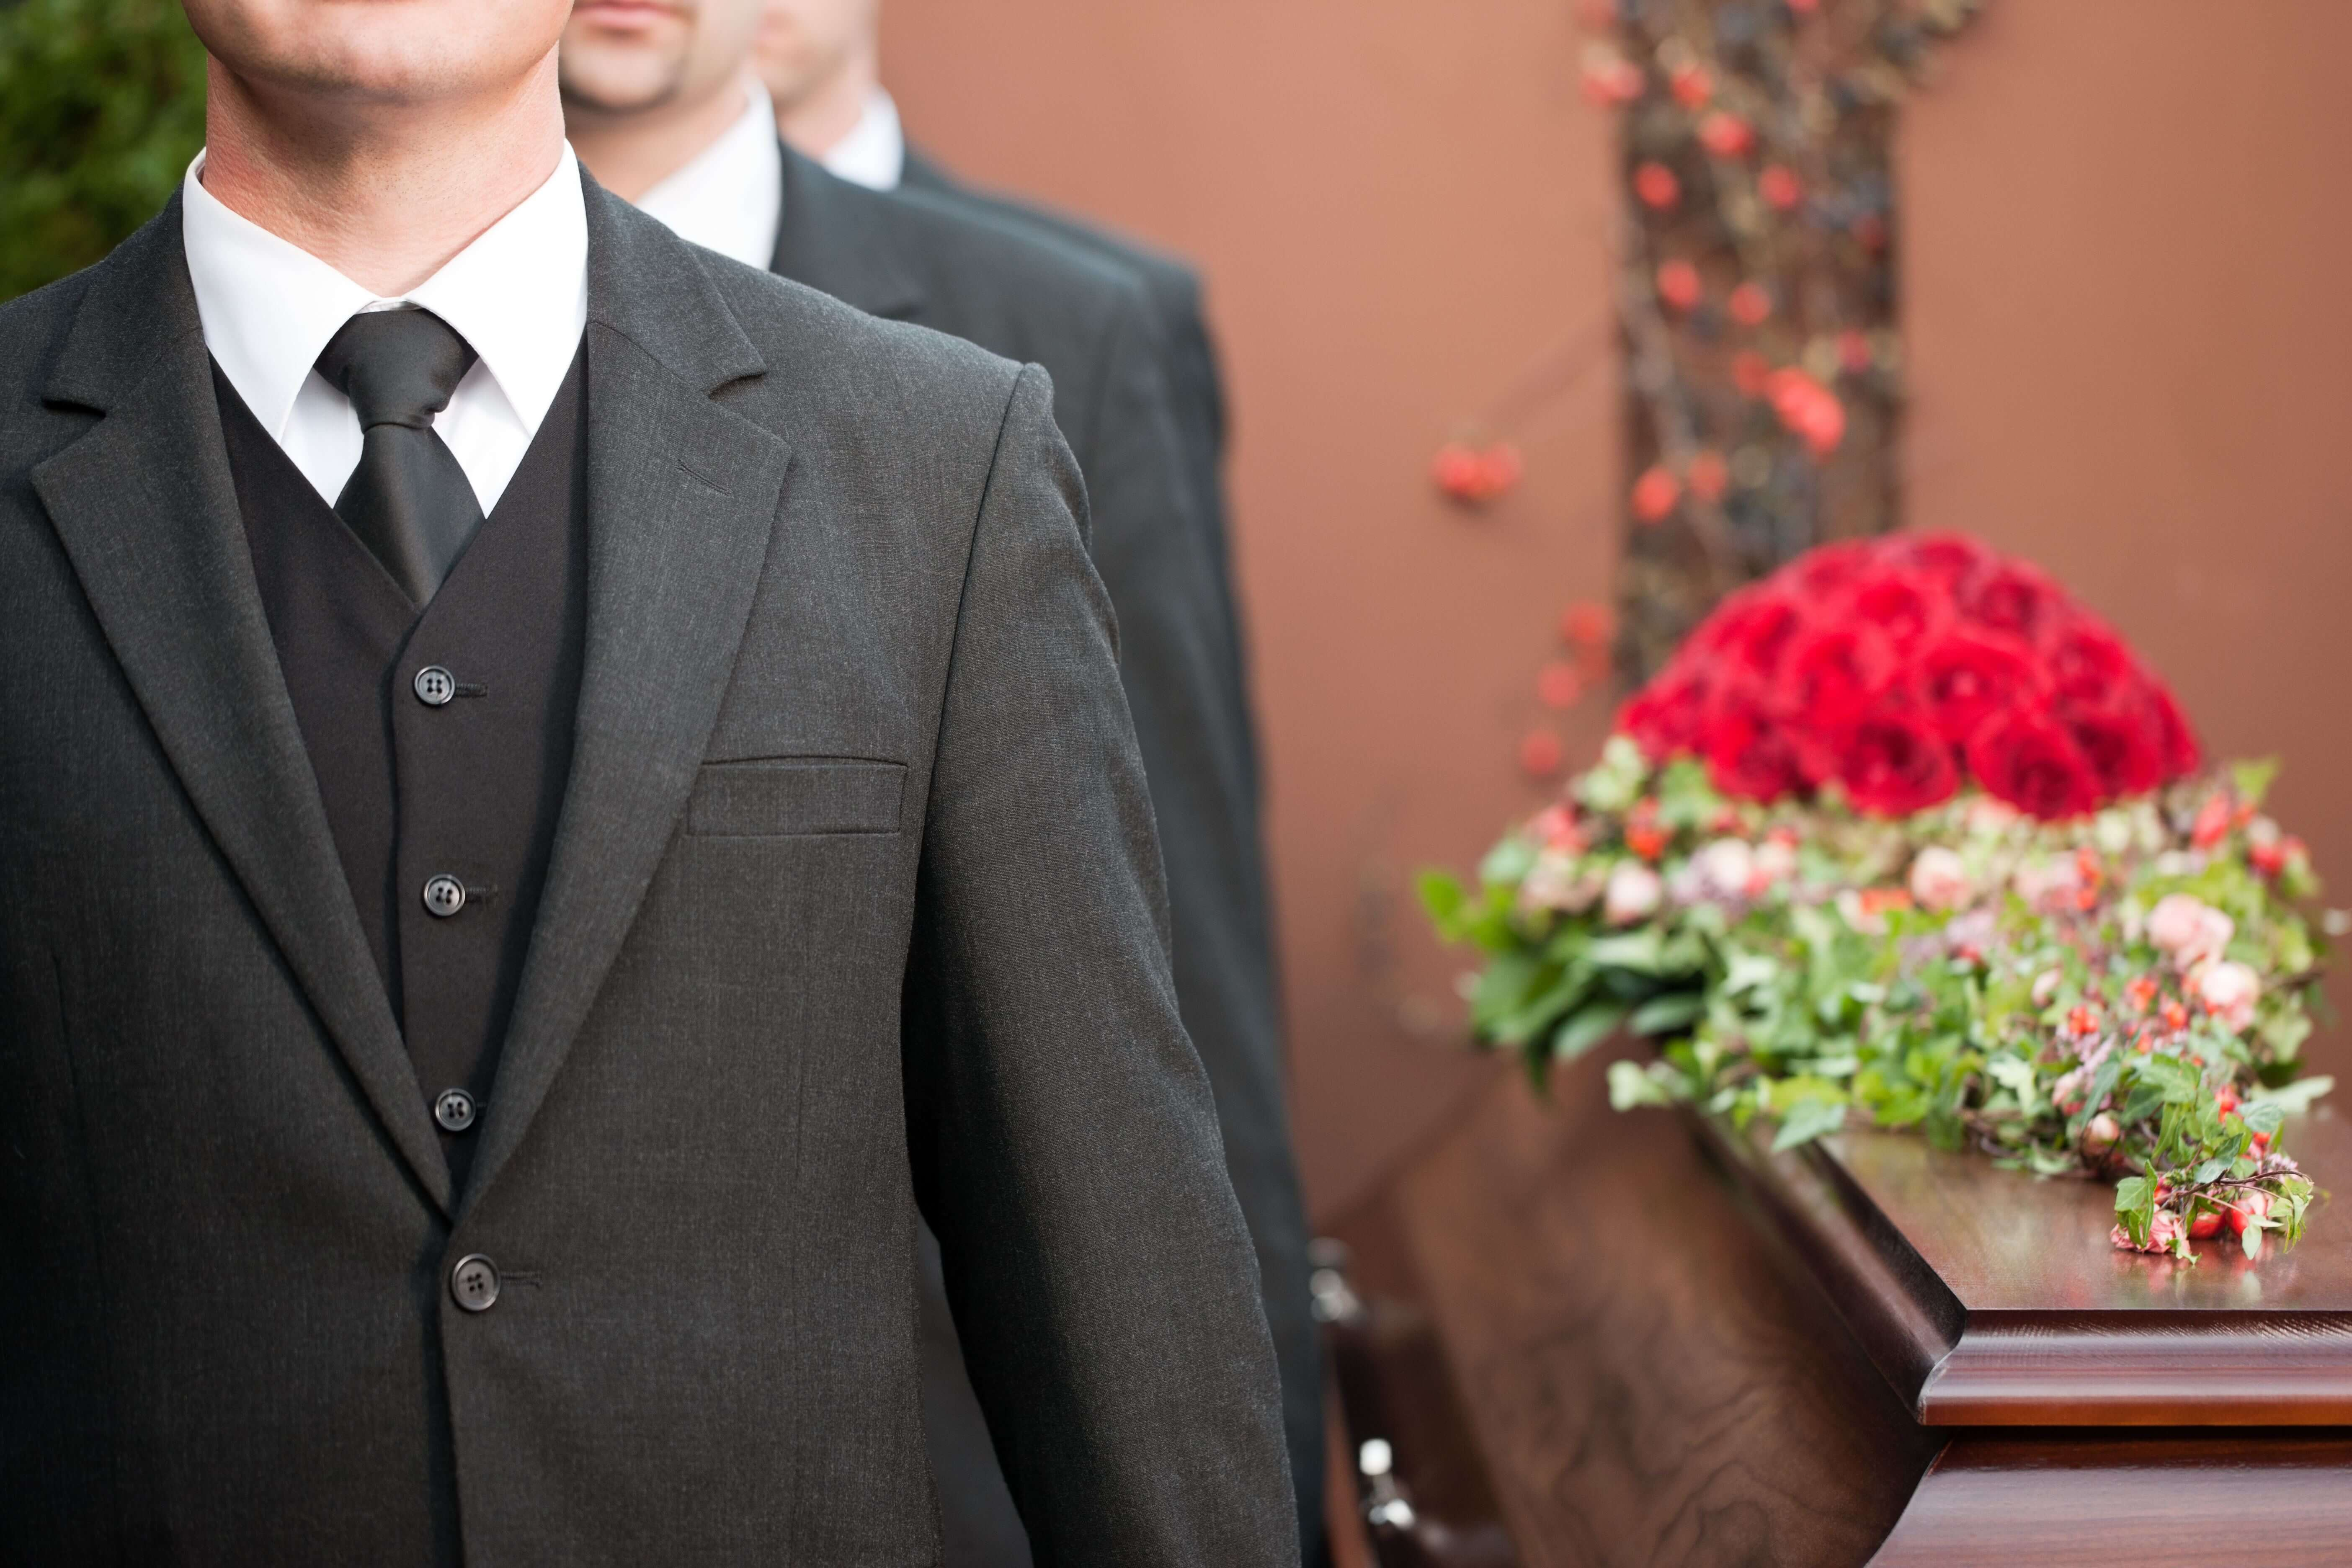 pallbearers wearing dark suits carrying a coffin with red roses on top